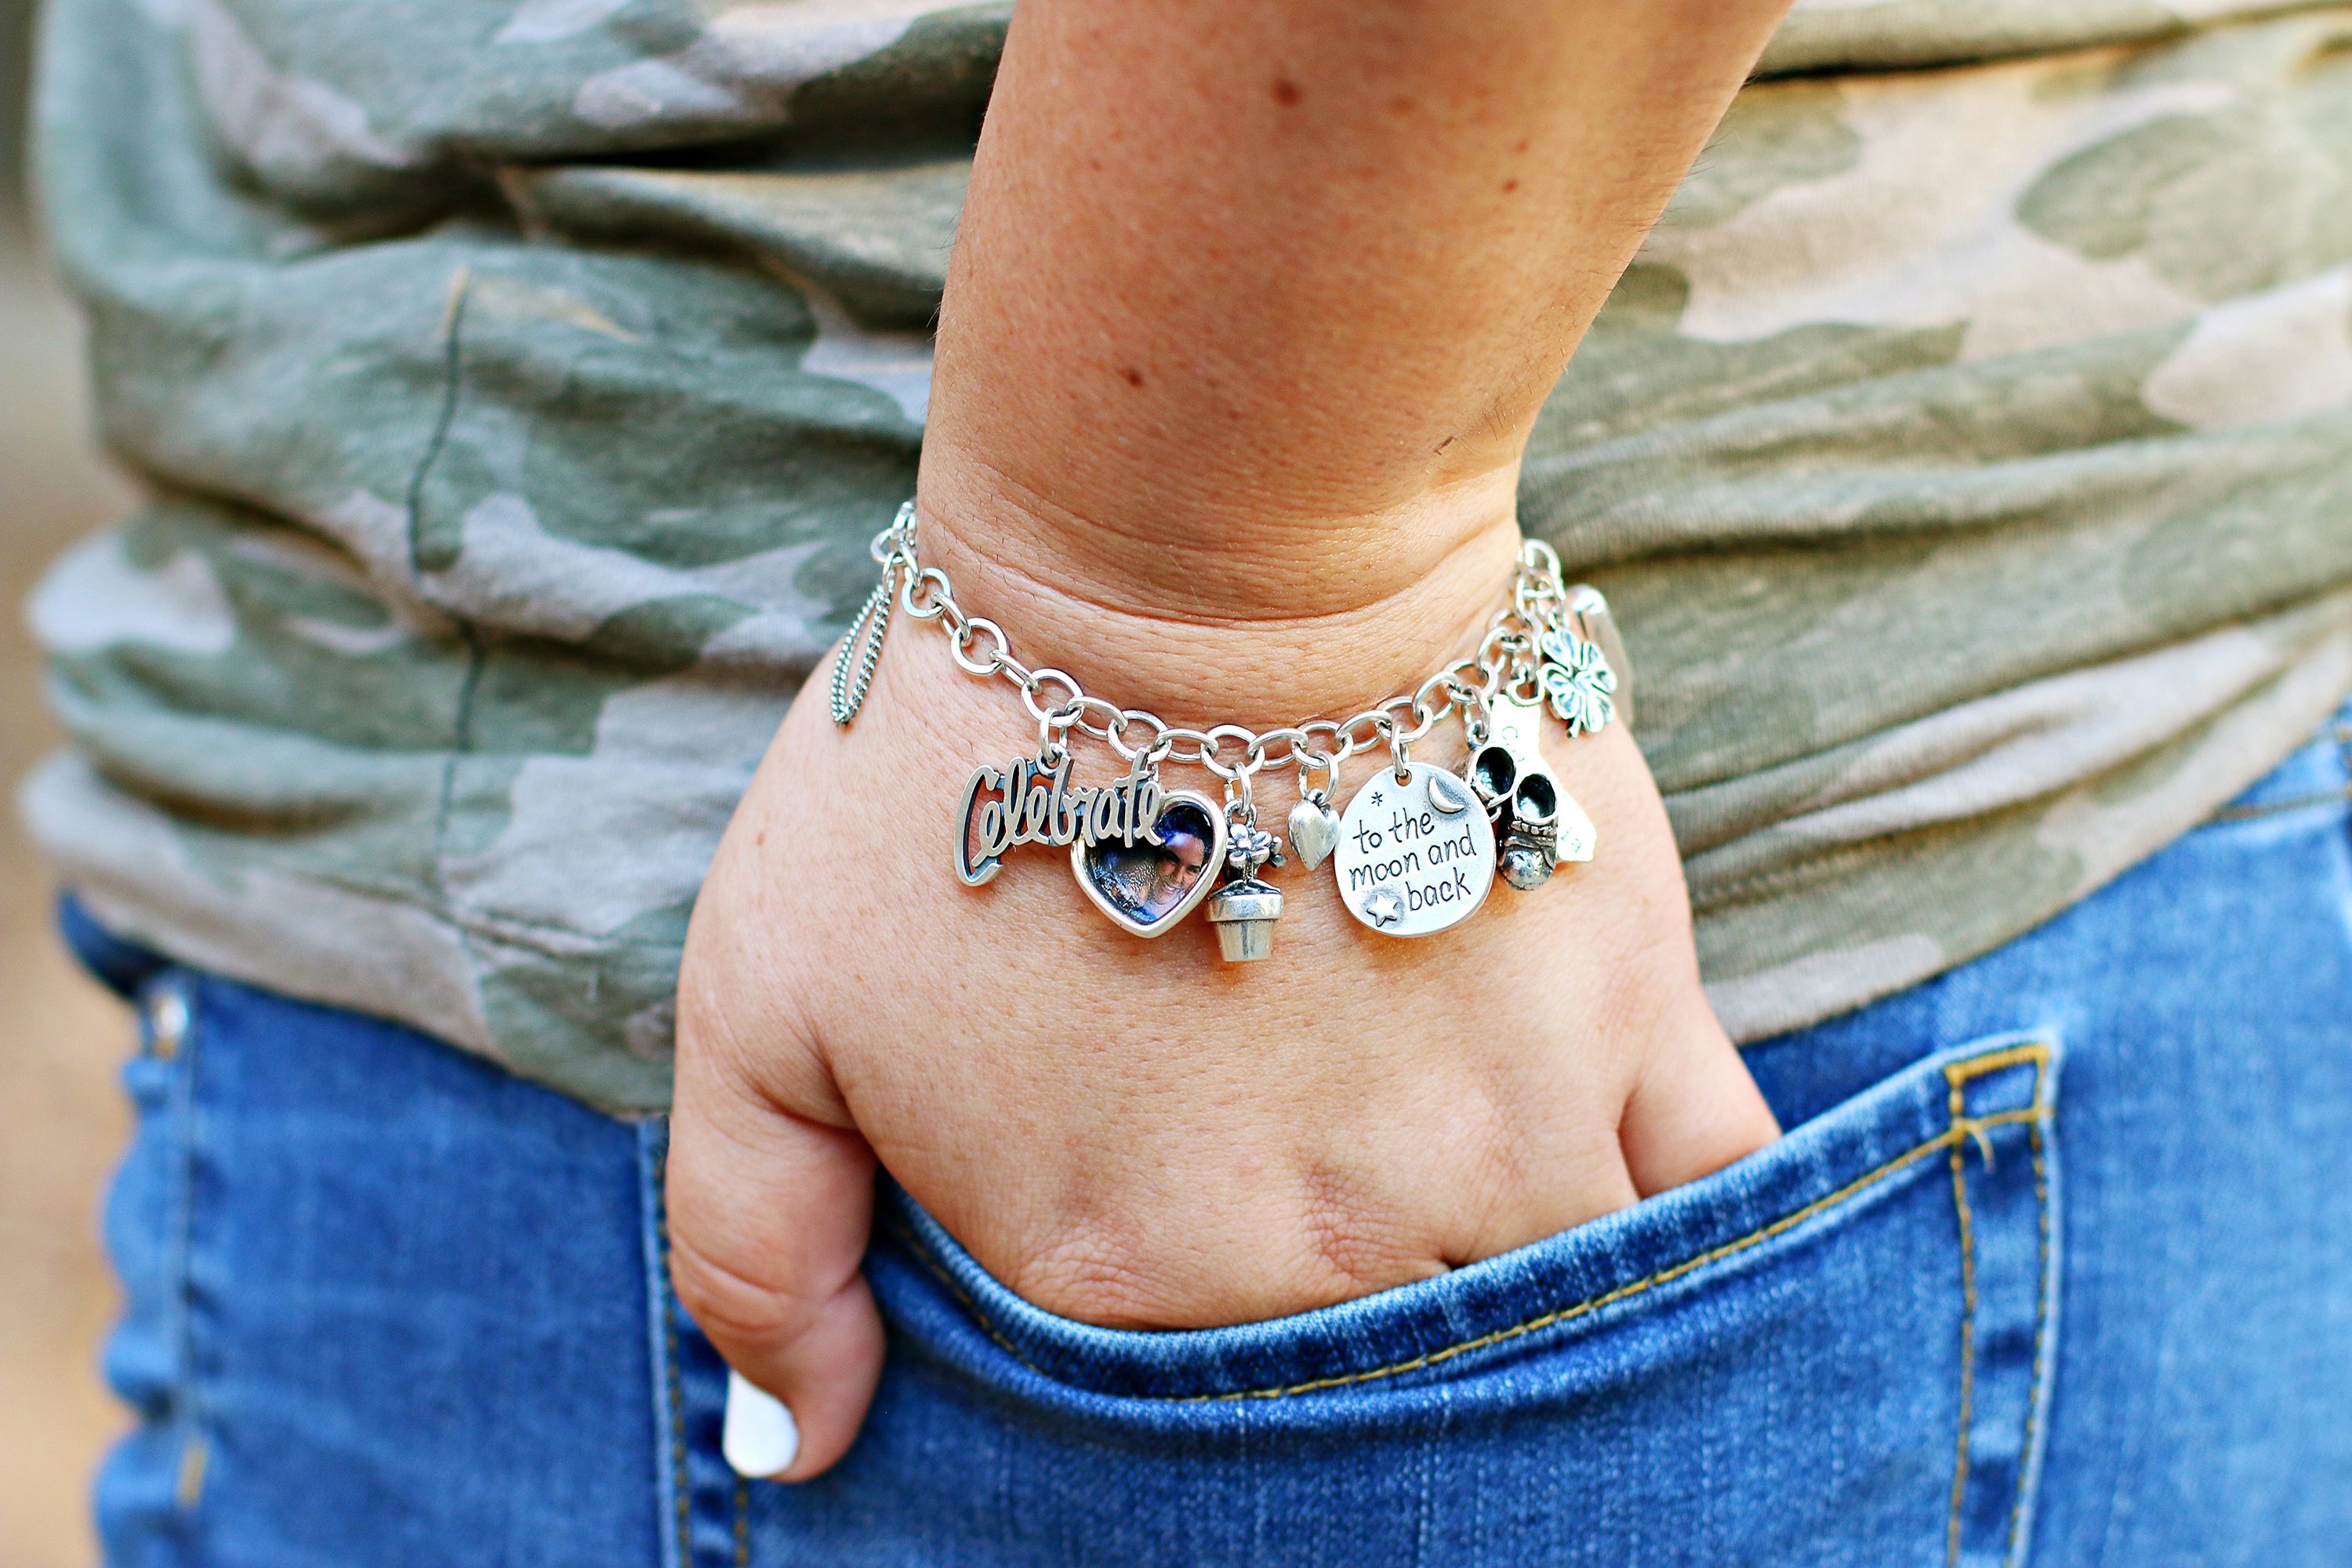 """A custom charm bracelet from James Avery Artisan Jewelry. One charm says Celebrate. There is a heart picture frame charm, a potted flower charm, a small heart charm, a charm that says """"to the moon and back"""", baby shoes, a charm of California, a shamrock charm, and cruise ship charm."""